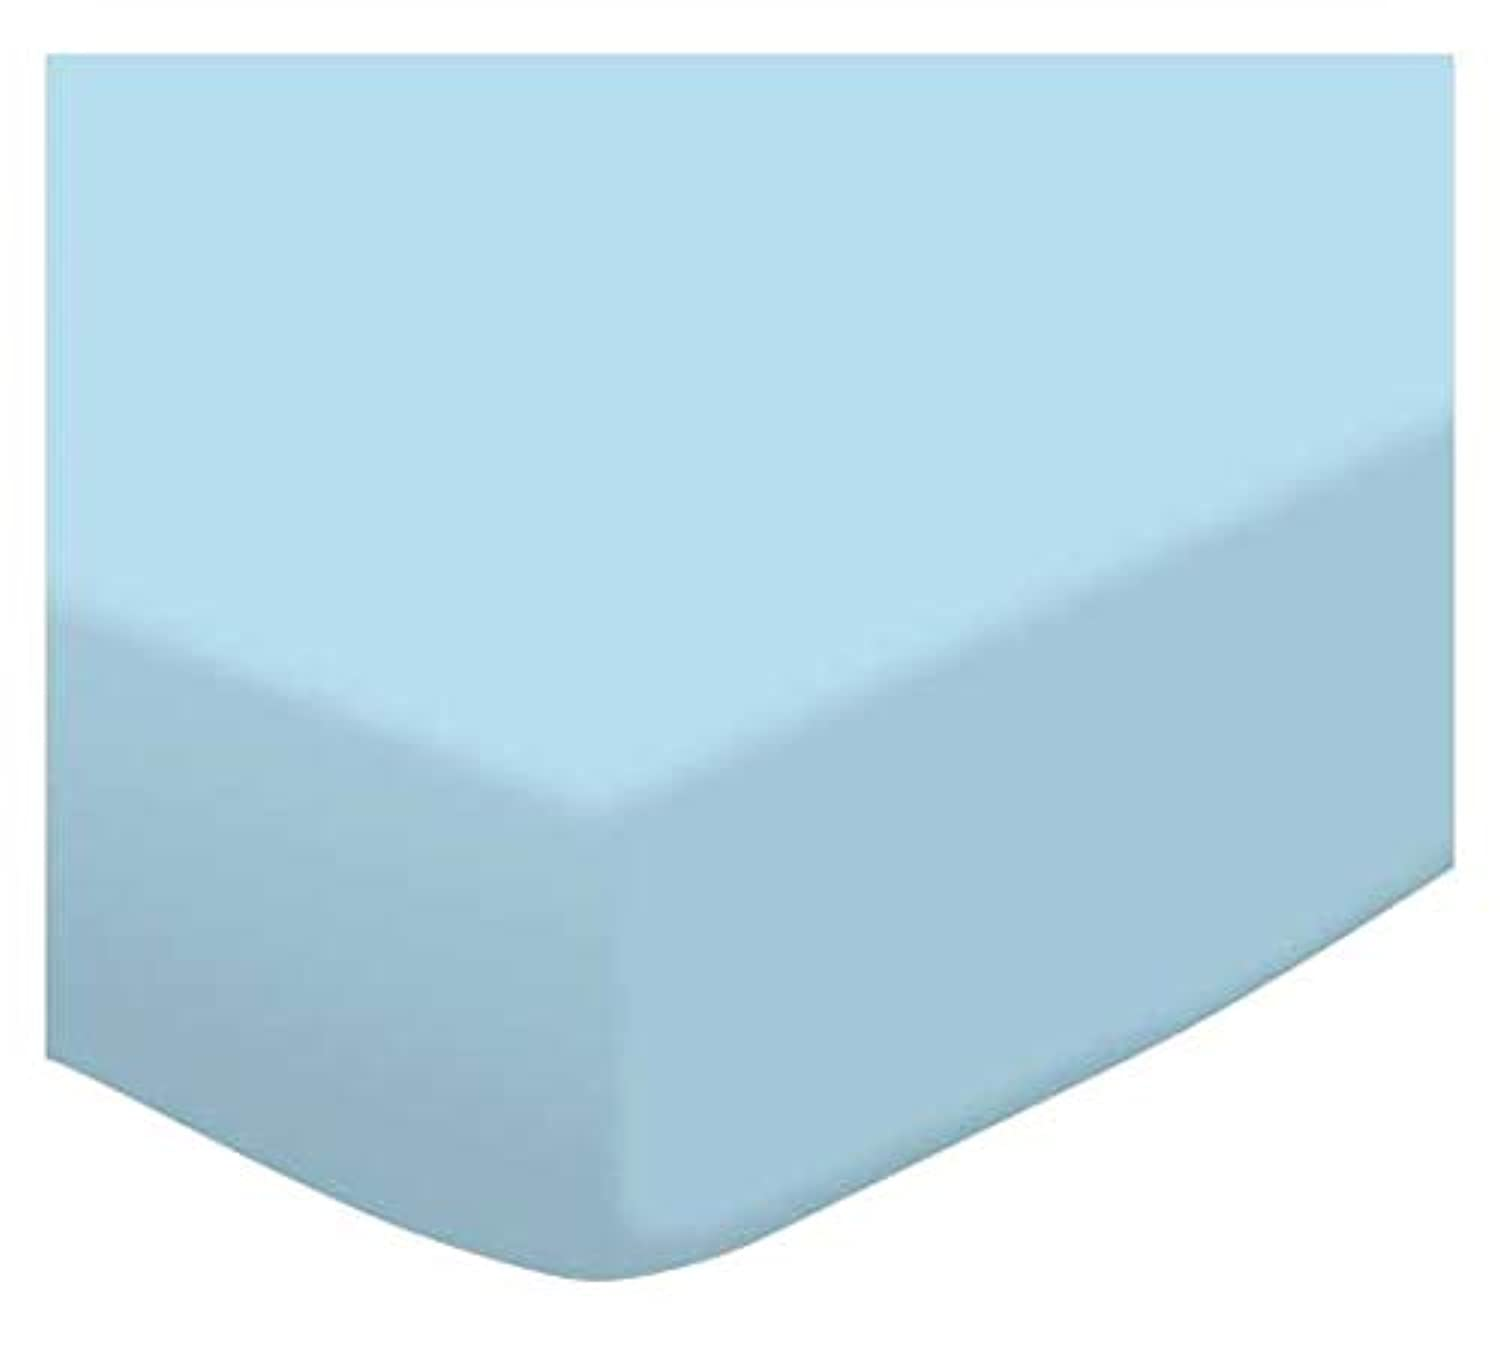 SheetWorld Fitted Pack N Play (Graco Square Playard) Sheet - Flannel FS9 - Aqua blue - Made In USA by sheetworld